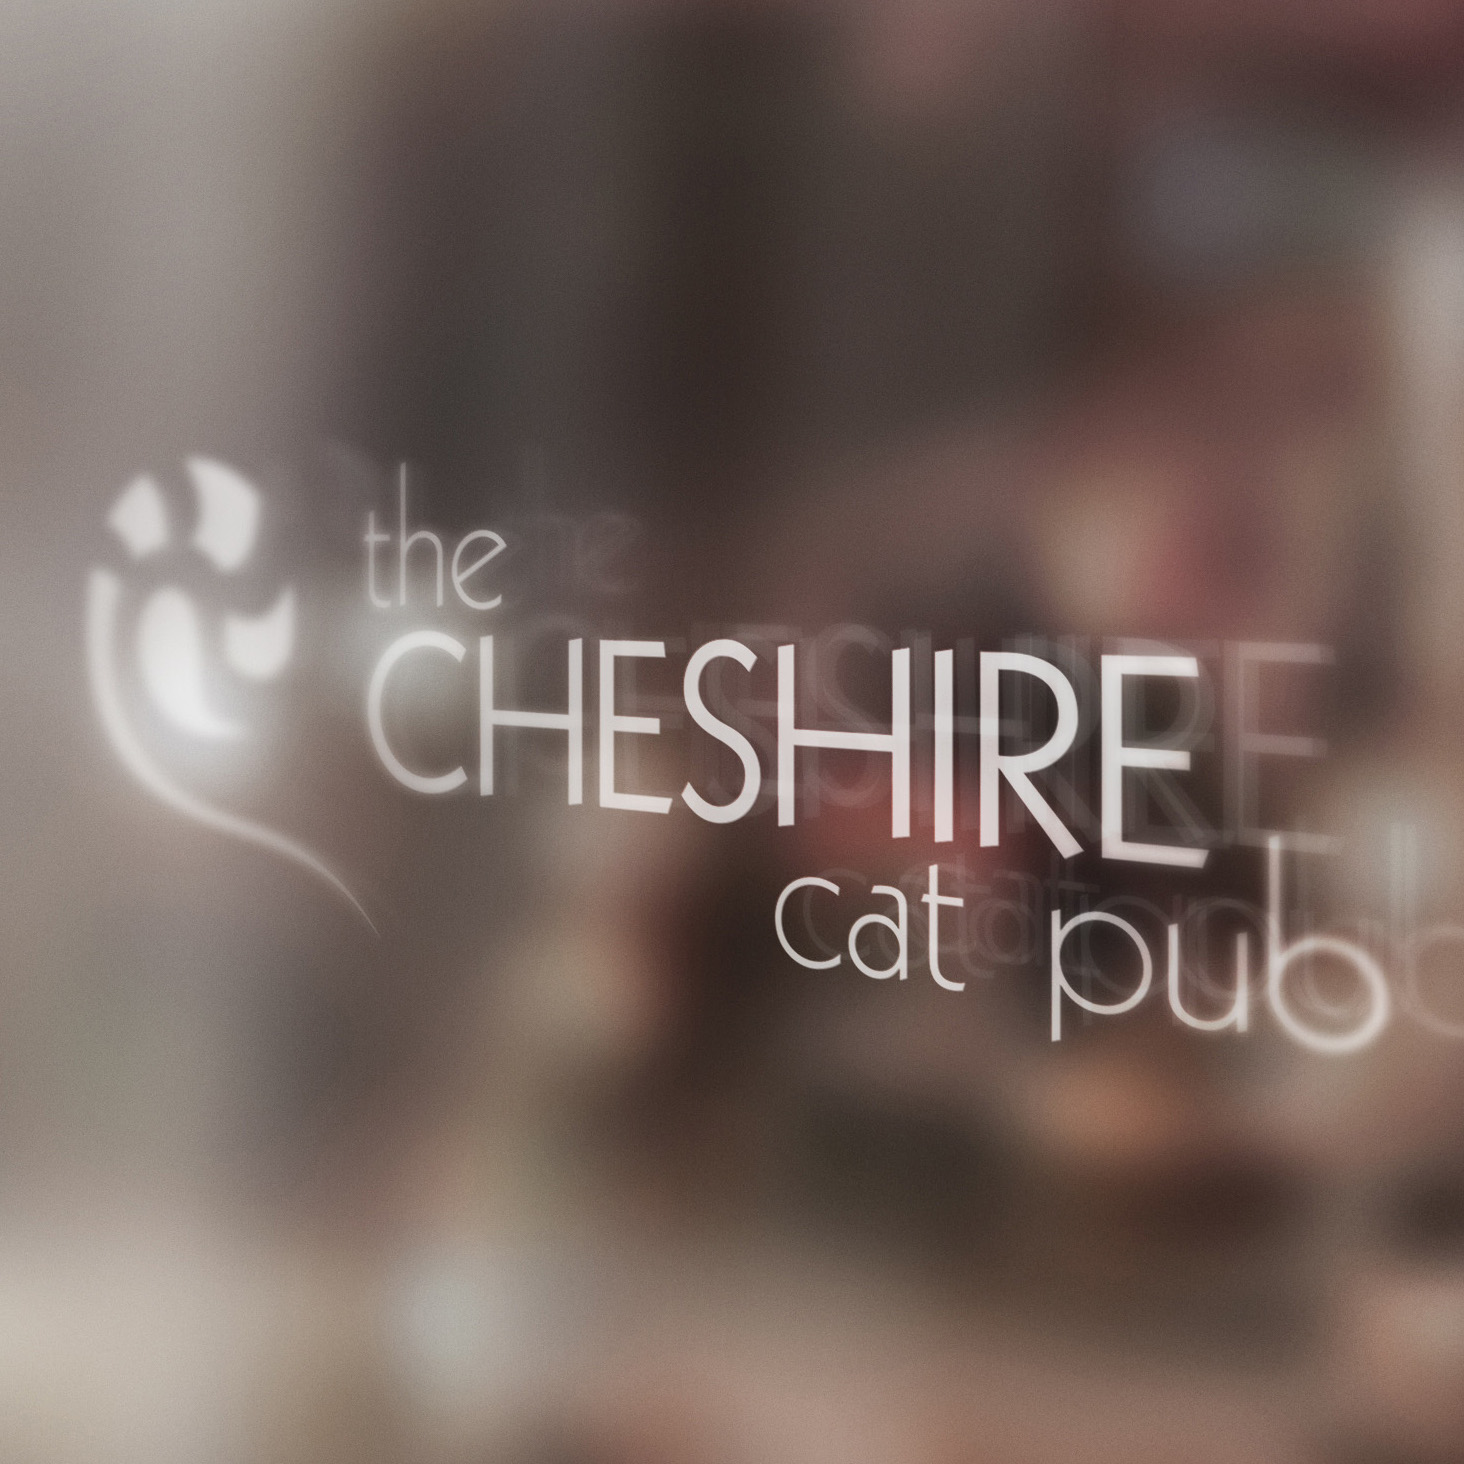 Cheshire Cat Pub Branding Artwork